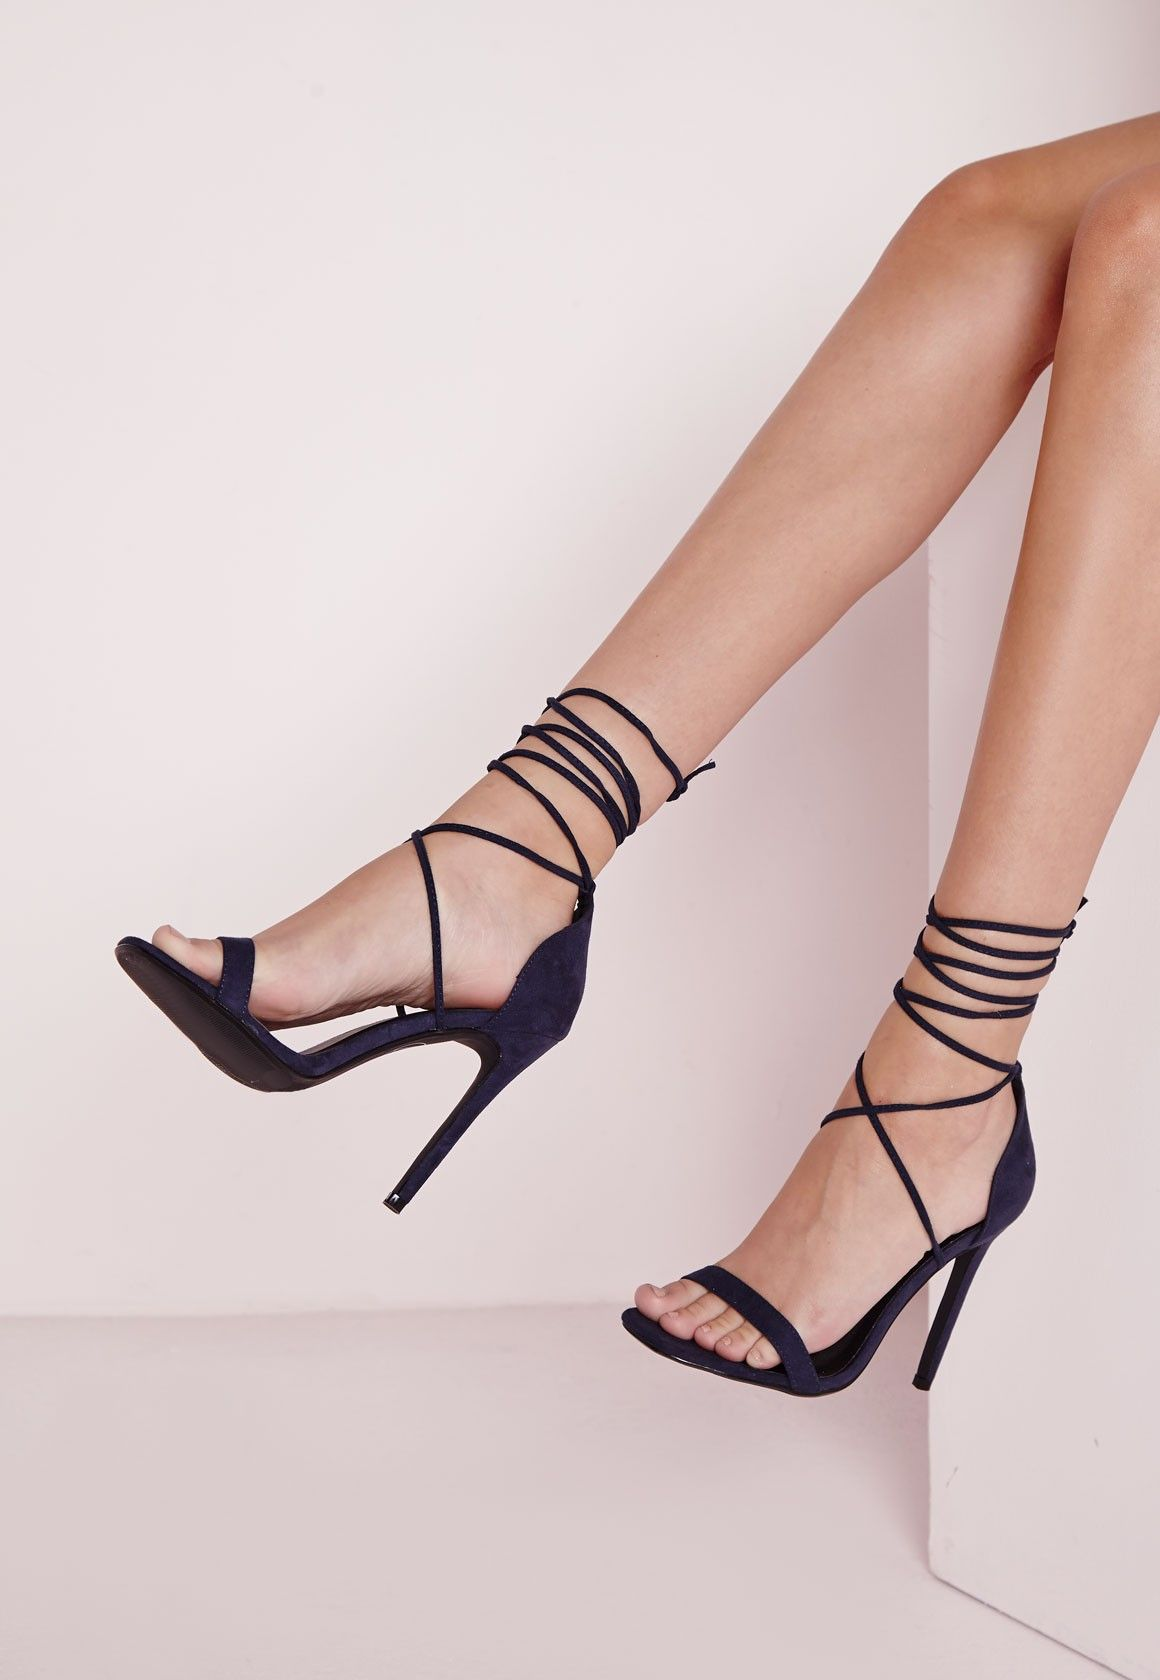 37d3533ccb22 Lace Up Barely There Heeled Sandals Navy - Shoes - High Heels - Missguided